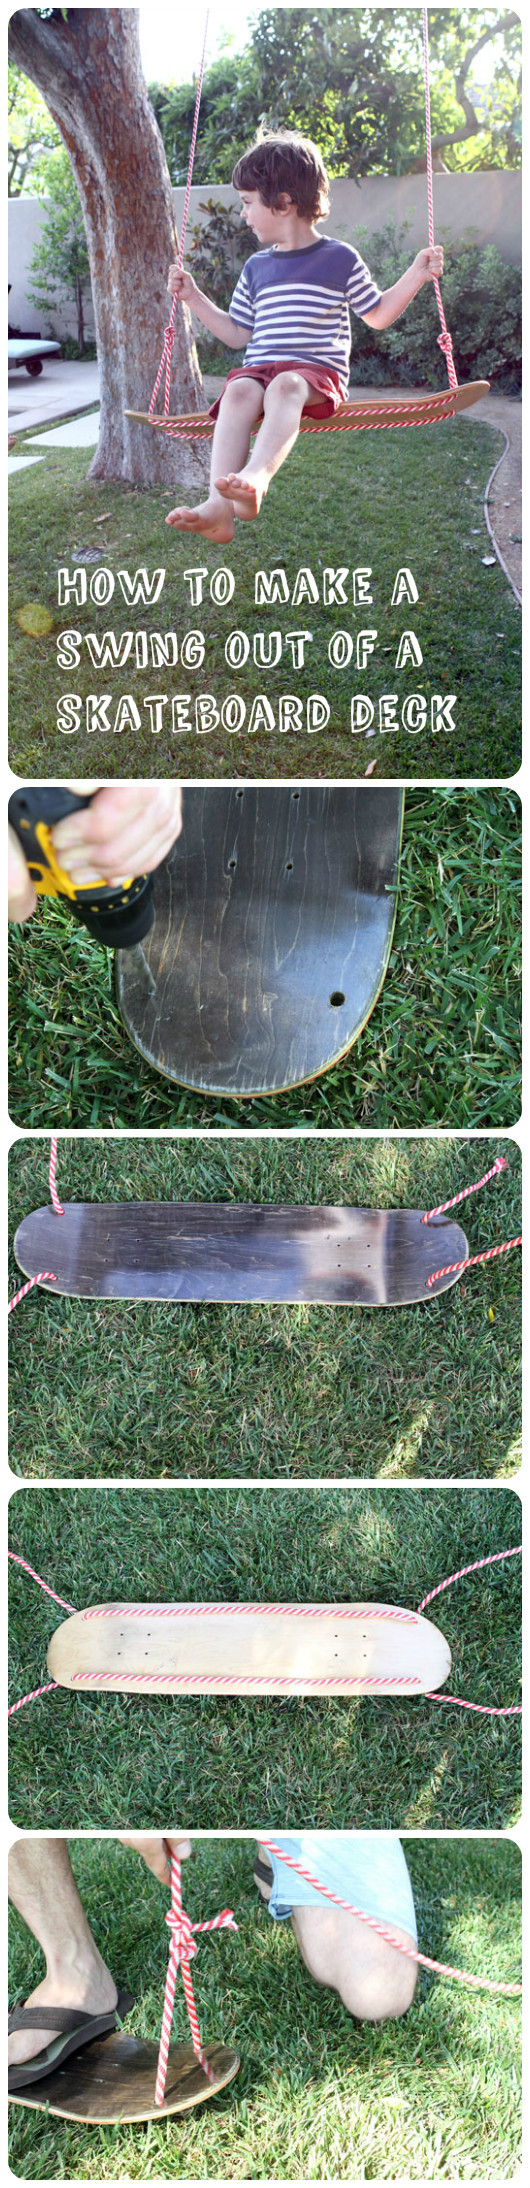 Skateboard deck swing